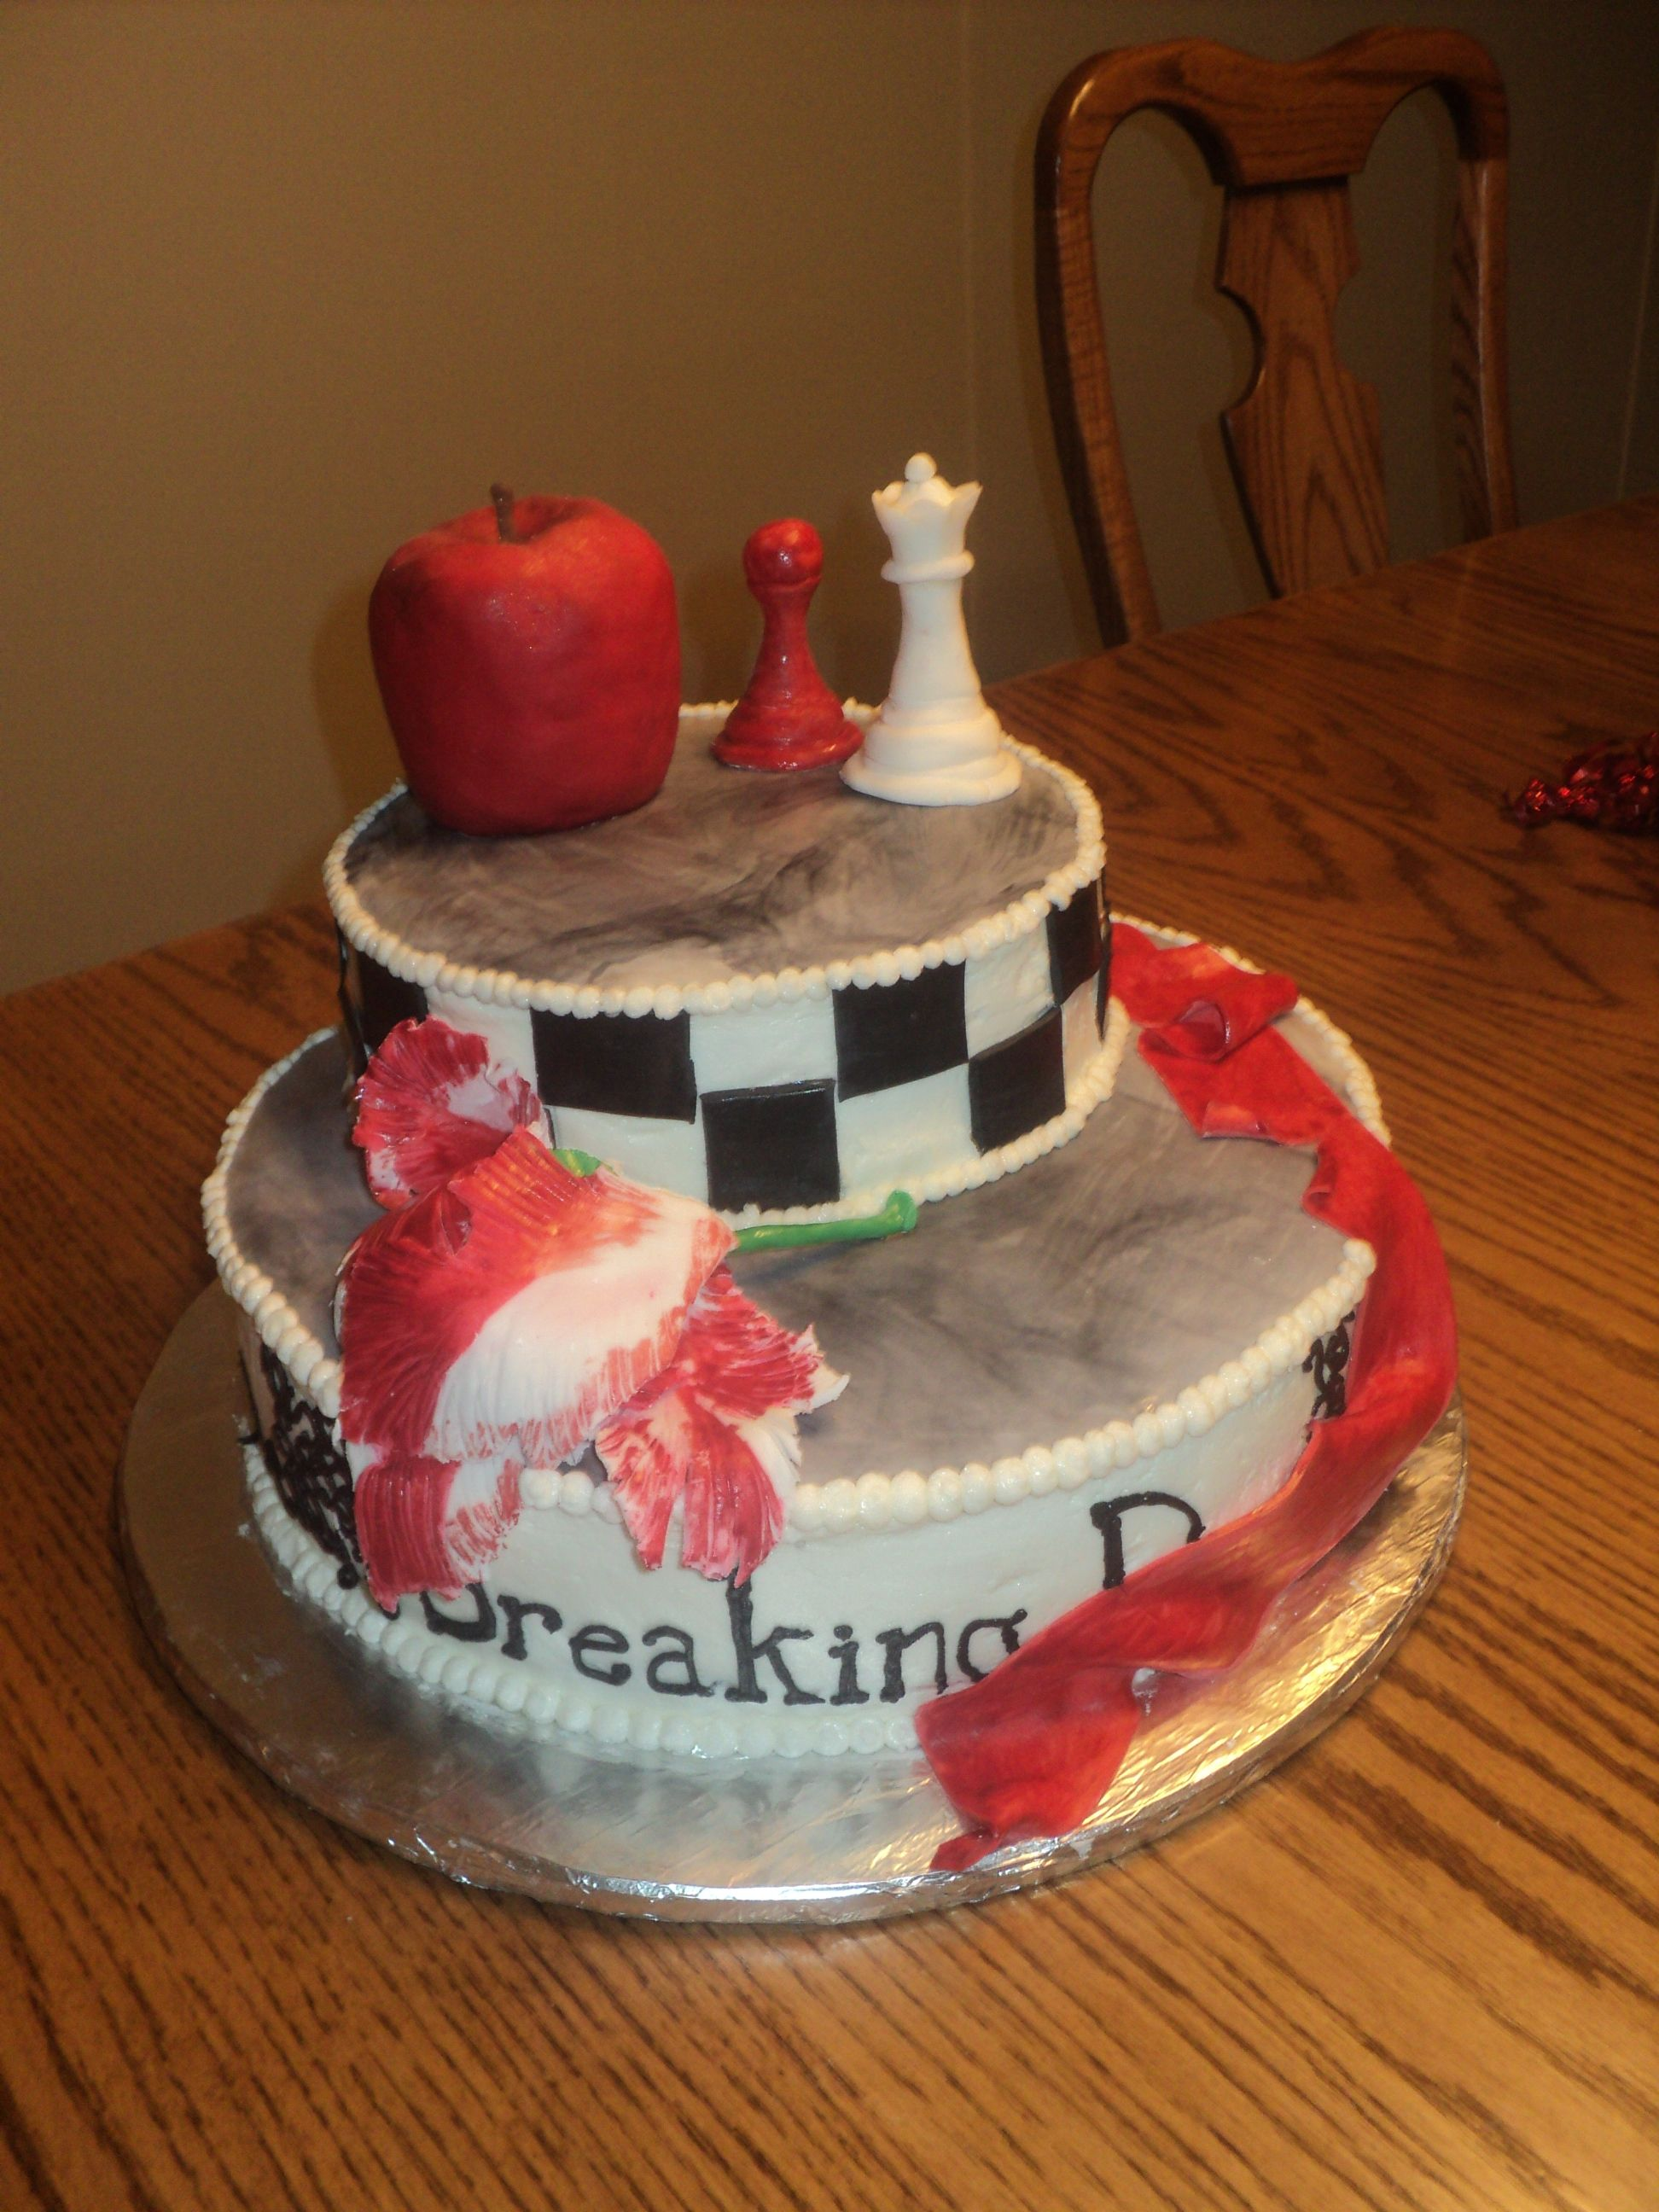 Twilight Saga Cake With Edible Apple And Decorations